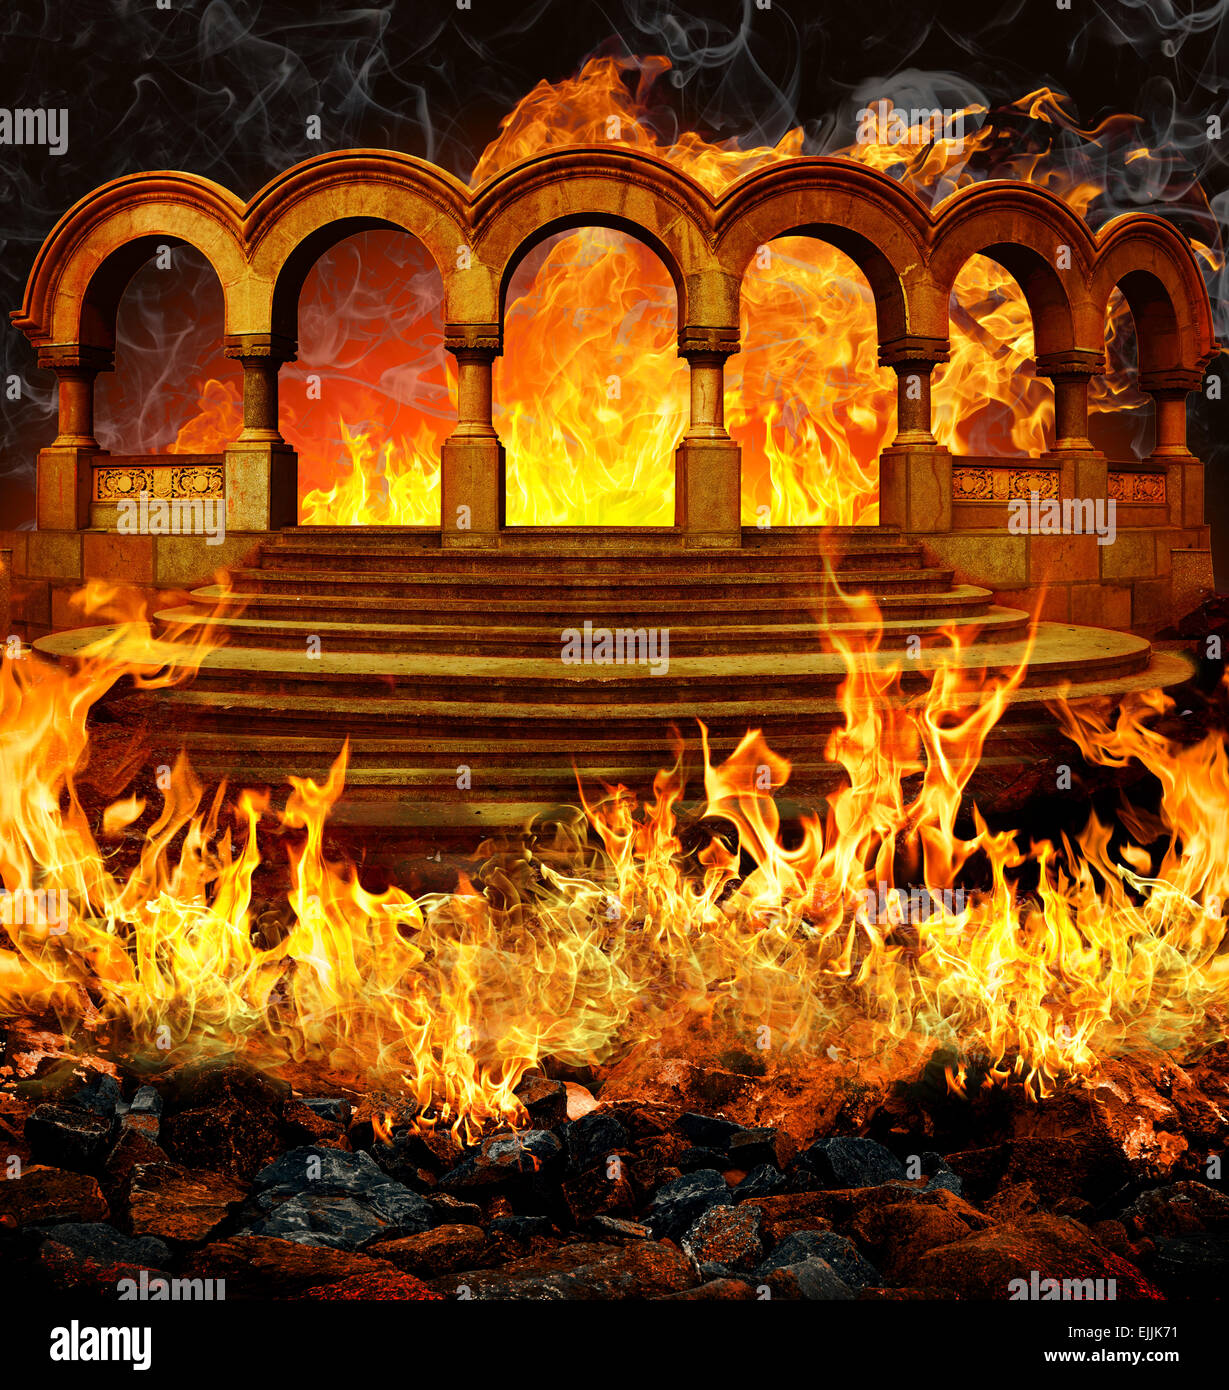 Hell gates with stairs and portal columns in fire flames and smoke. - Stock Image